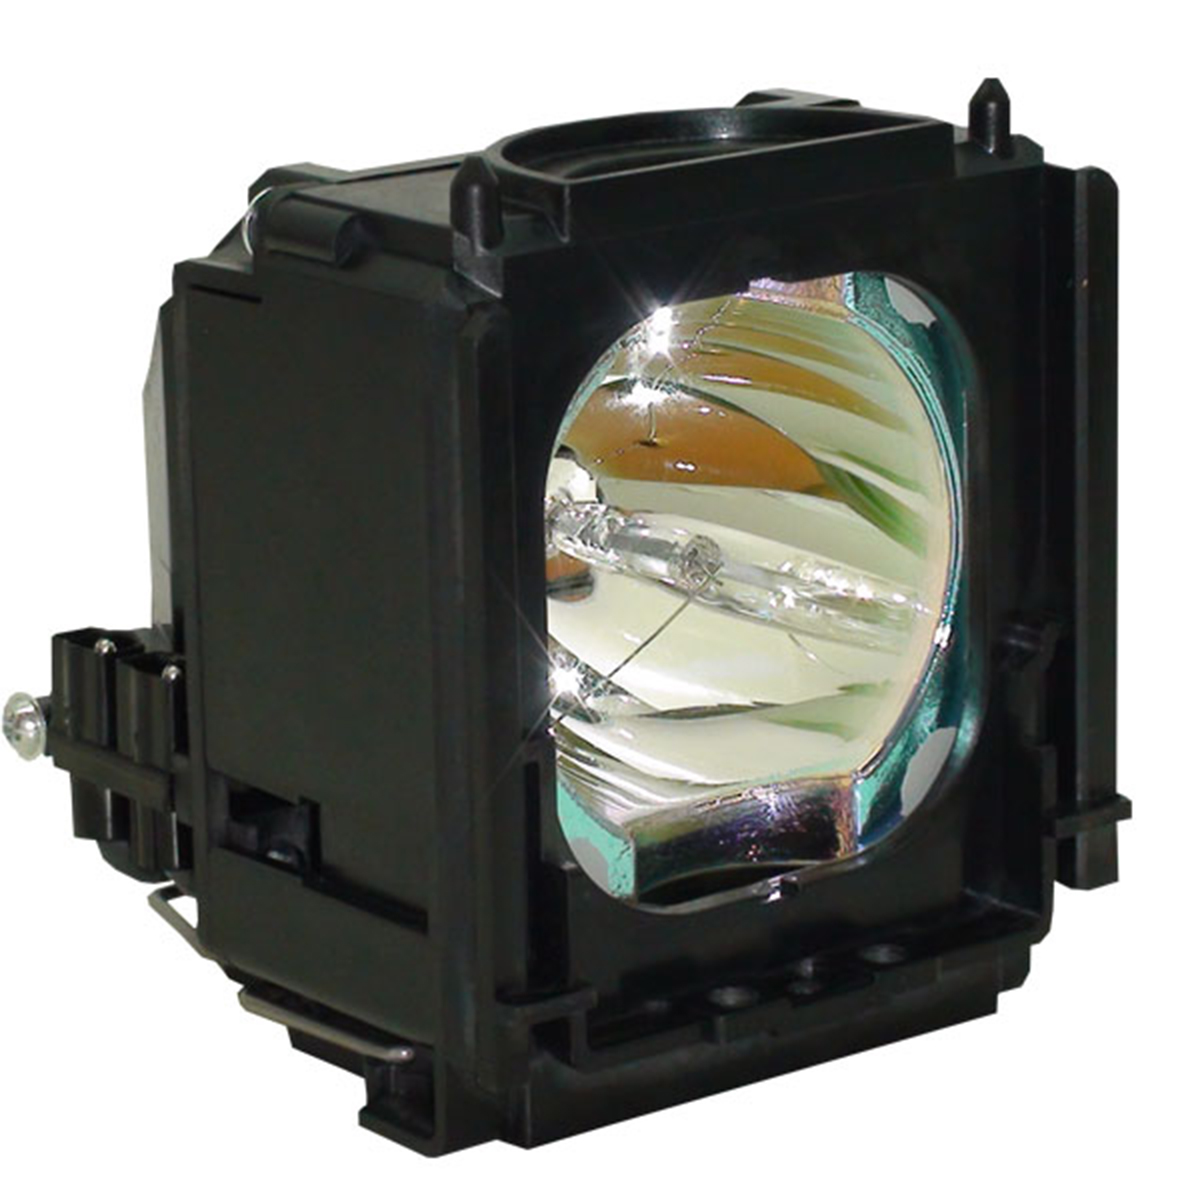 Original Osram Projector Lamp Replacement with Housing for Akai PT-61DL34(X) - image 3 de 5